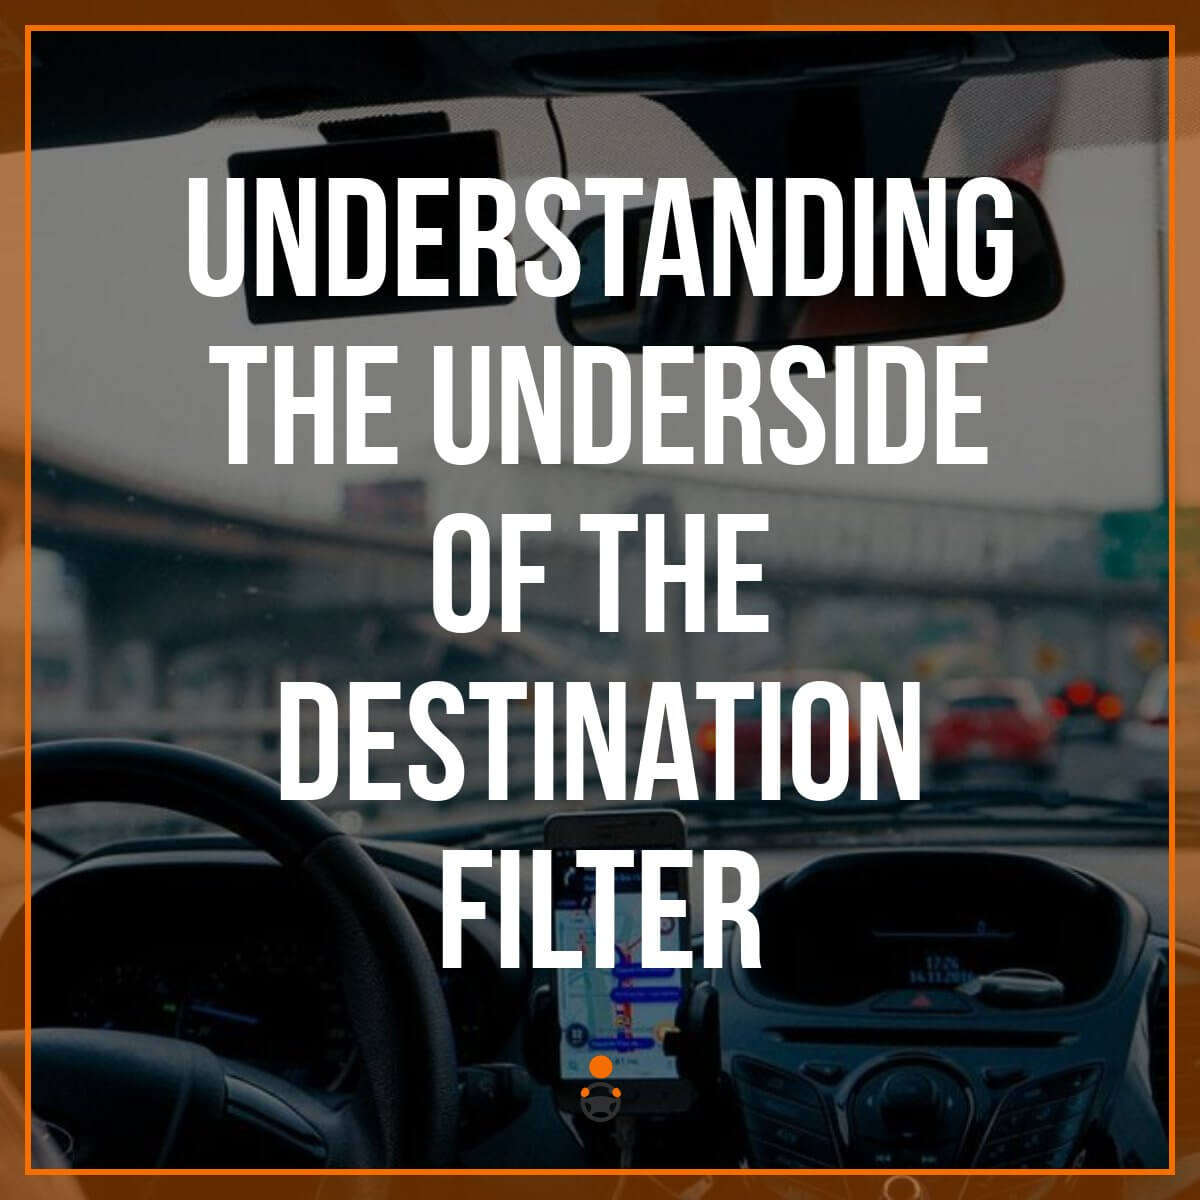 When introduced, destination filters were incredibly popular with drivers. Finally, some measure of control over when and where we drove, right? Unfortunately, destination filters have been clawed back, leaving drivers feeling frustrated and wondering what they can do. Senior RSG contributor John Ince covers what happened to the destination filter, why, and how drivers can try to work around the limits of the destination filter.